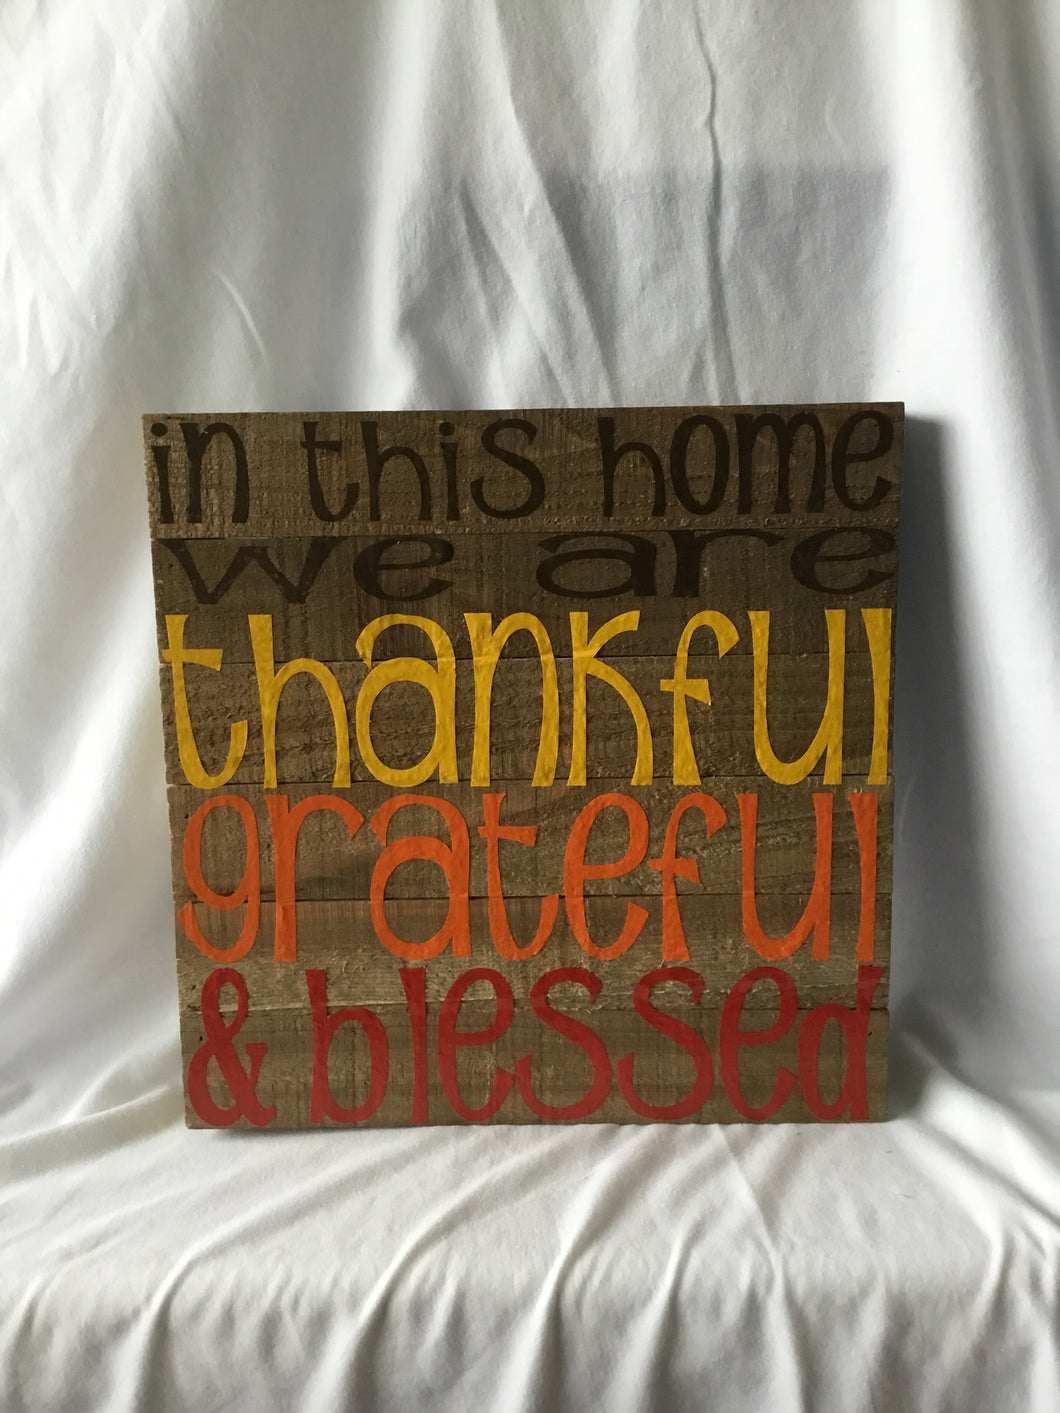 Thankful Grateful Blessed Wood Plank Pallet